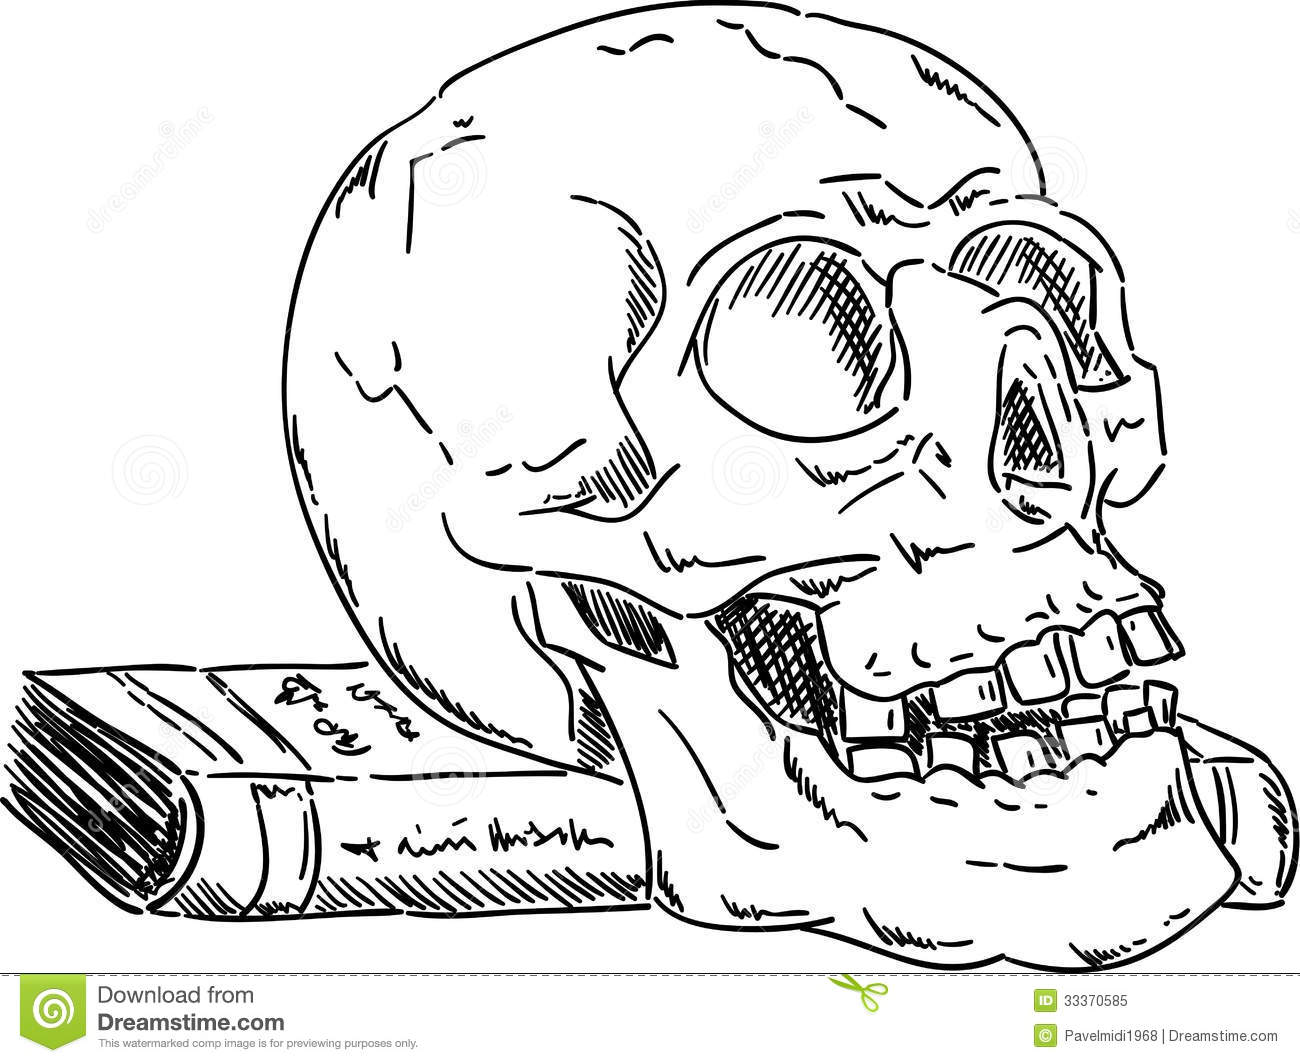 halloween skull stock vector illustration of picture - Halloween Pictures To Draw